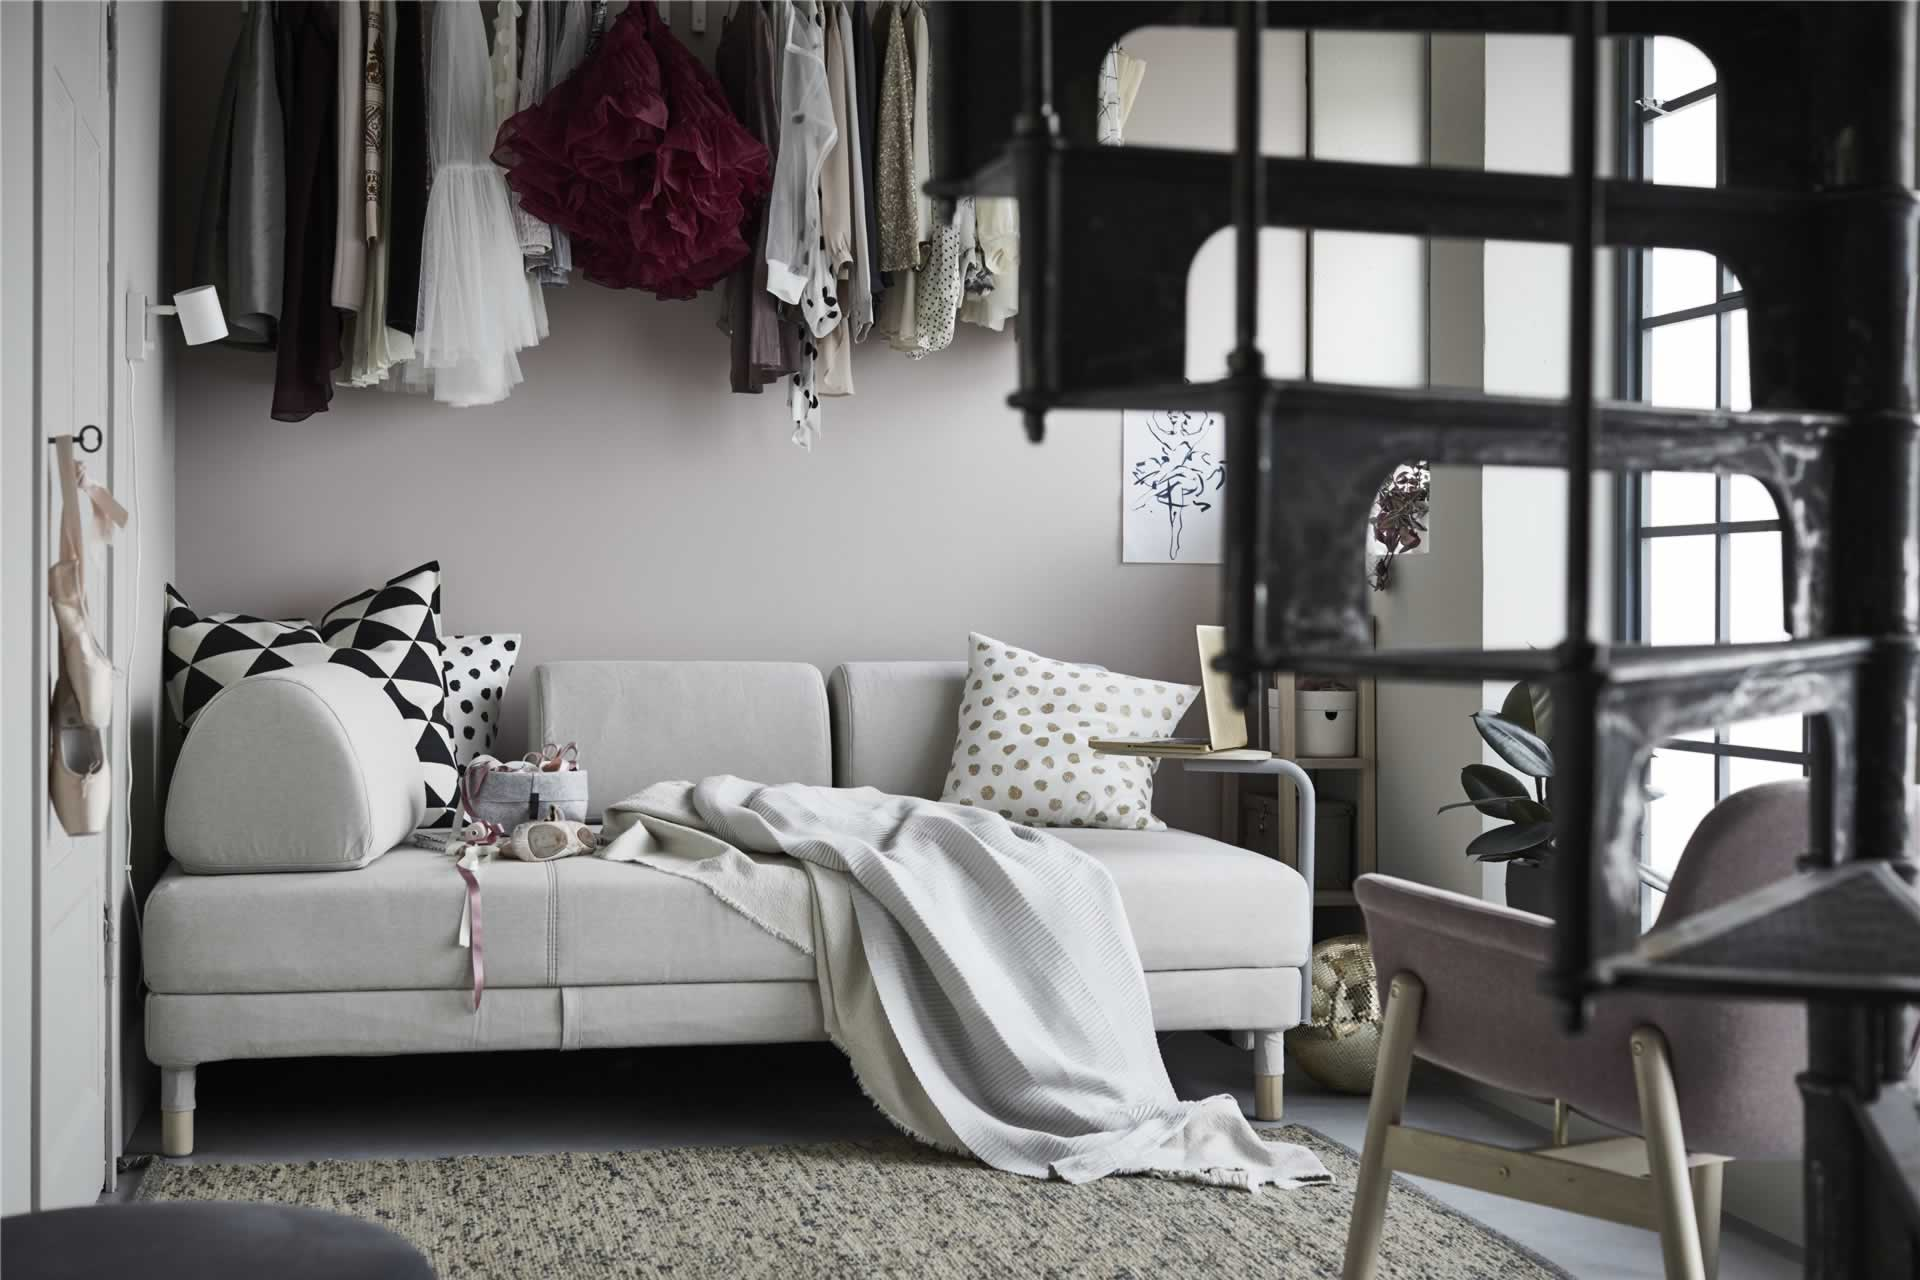 IKEA Ideas - Space for everything in your life